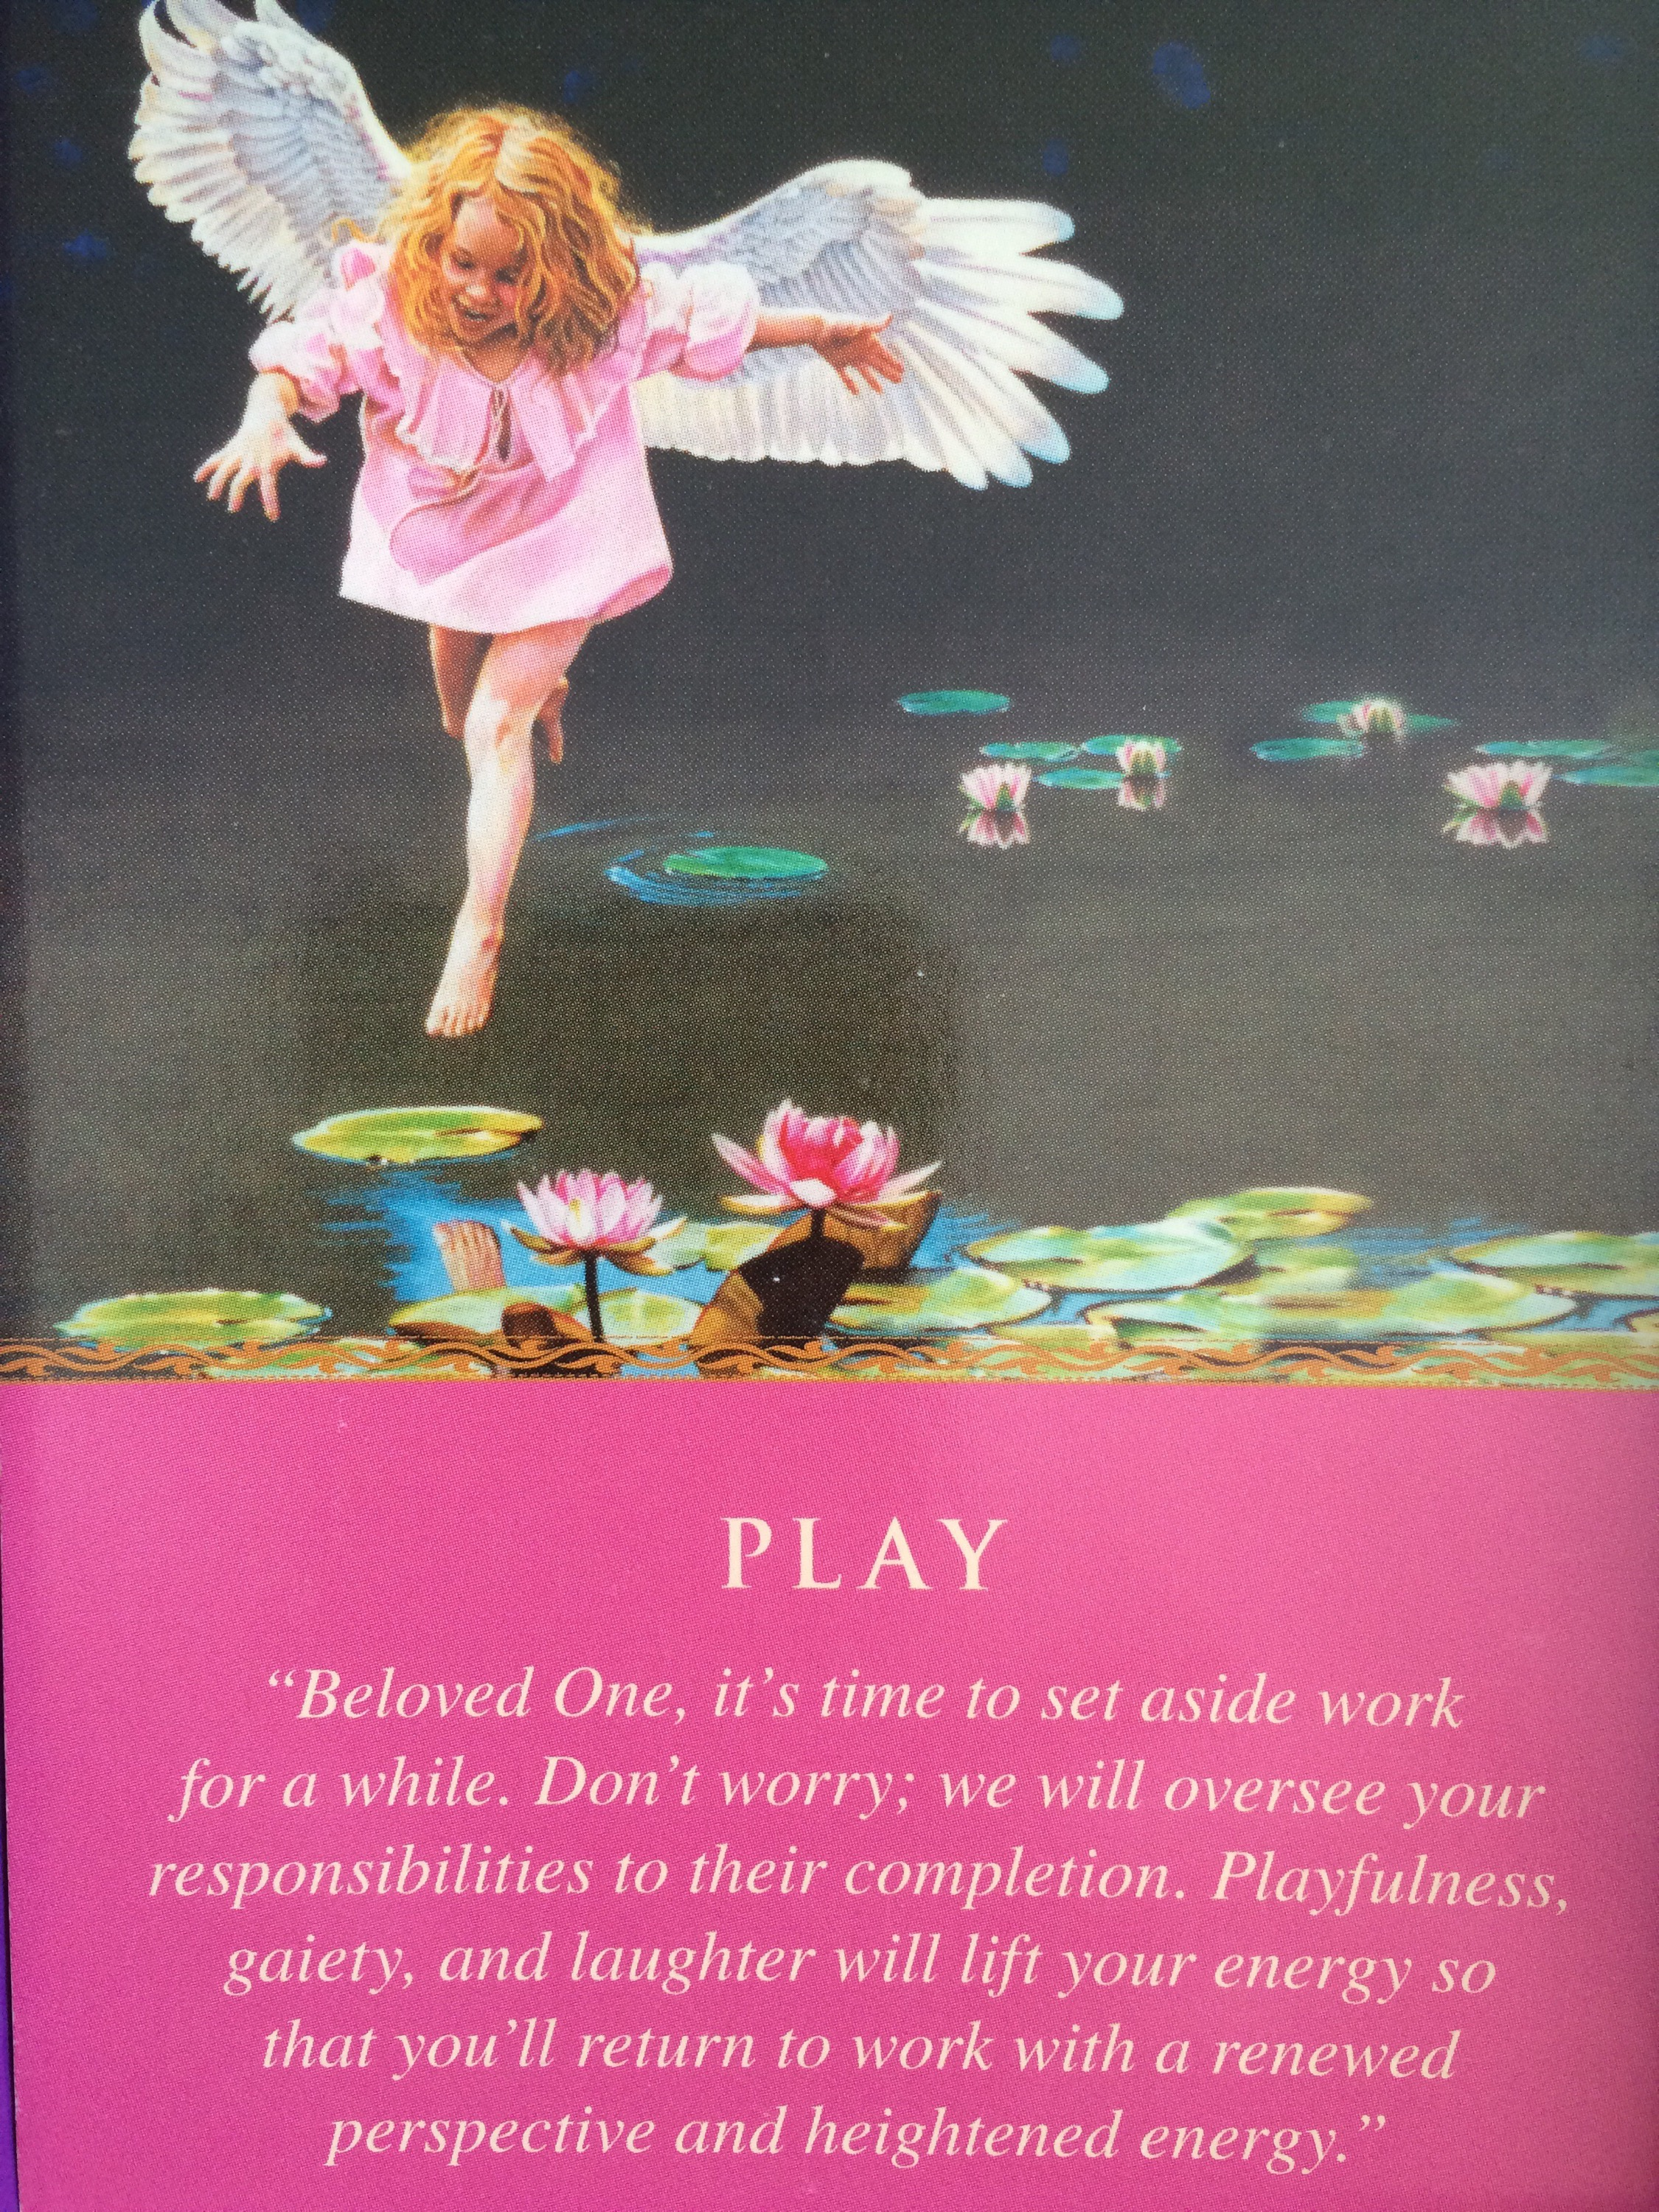 Daily Angel Oracle Card Celebration From The Guardian: Daily Guidance From Your Angels Play